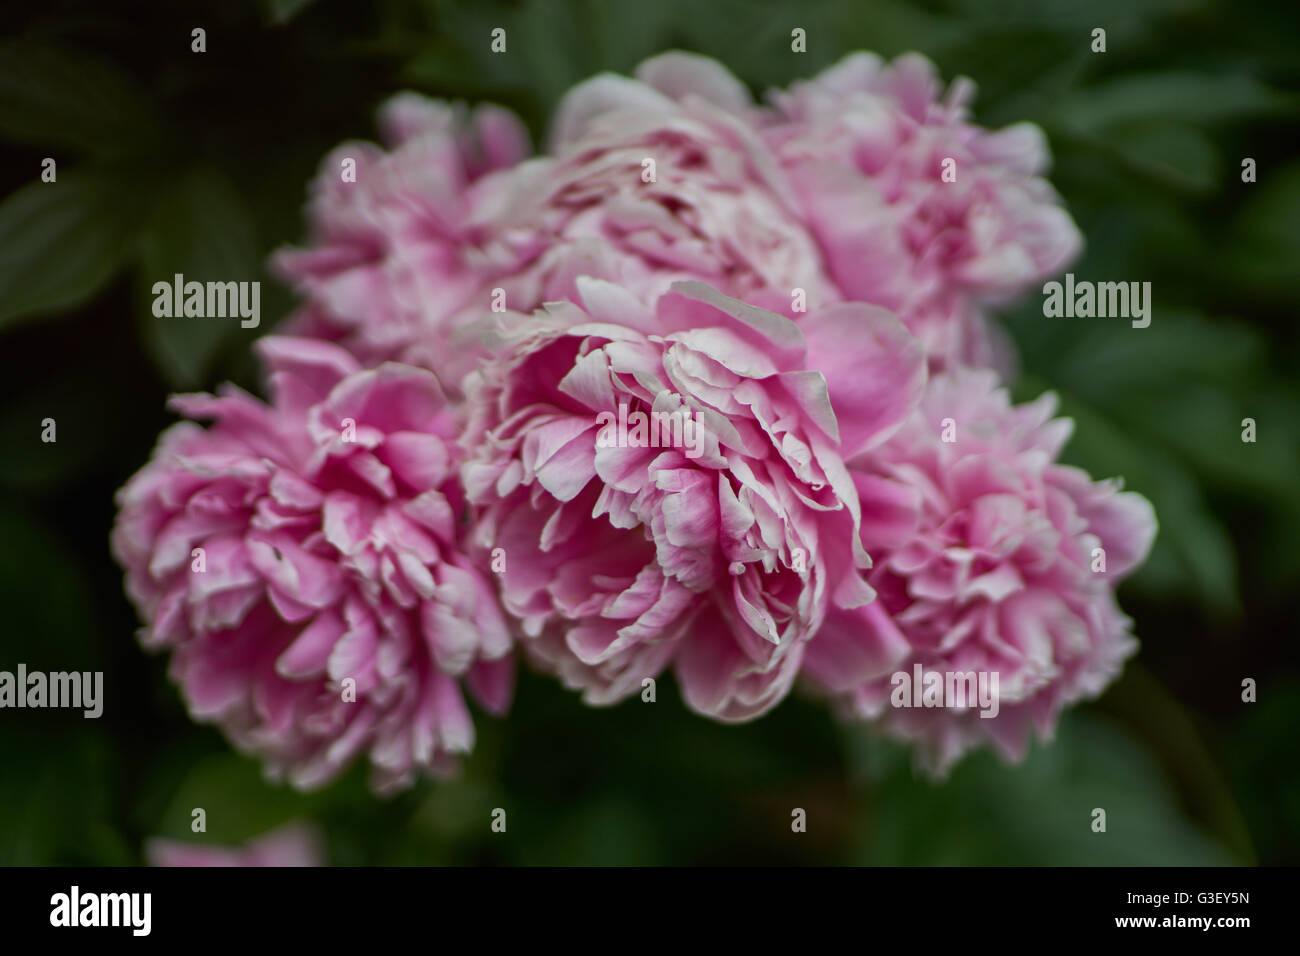 Pink white edges stock photos pink white edges stock images alamy bunch of lush dreamy pink peonies with white petal edges cloes up peonia stock image mightylinksfo